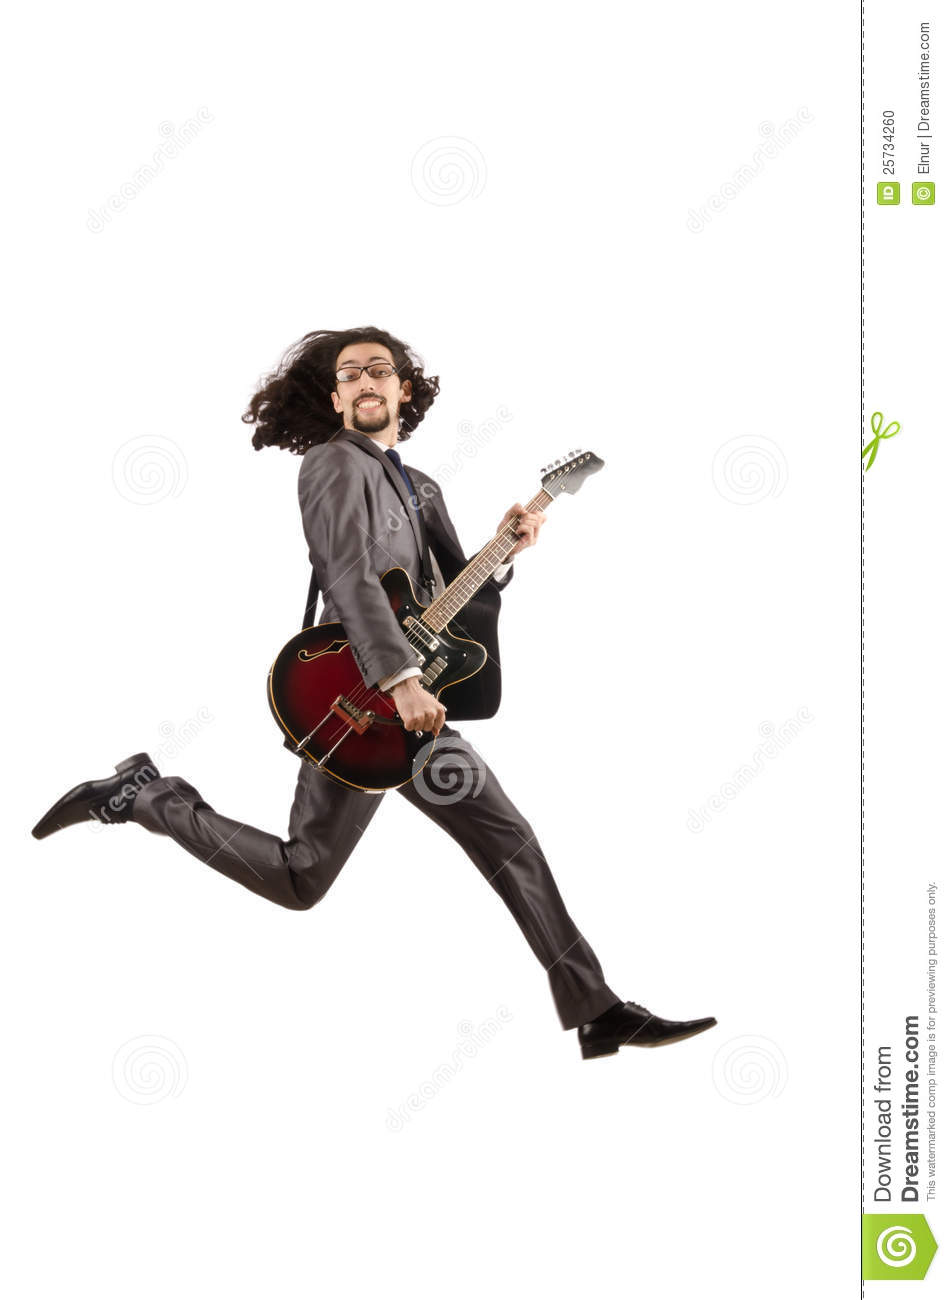 Guitar player in business suit